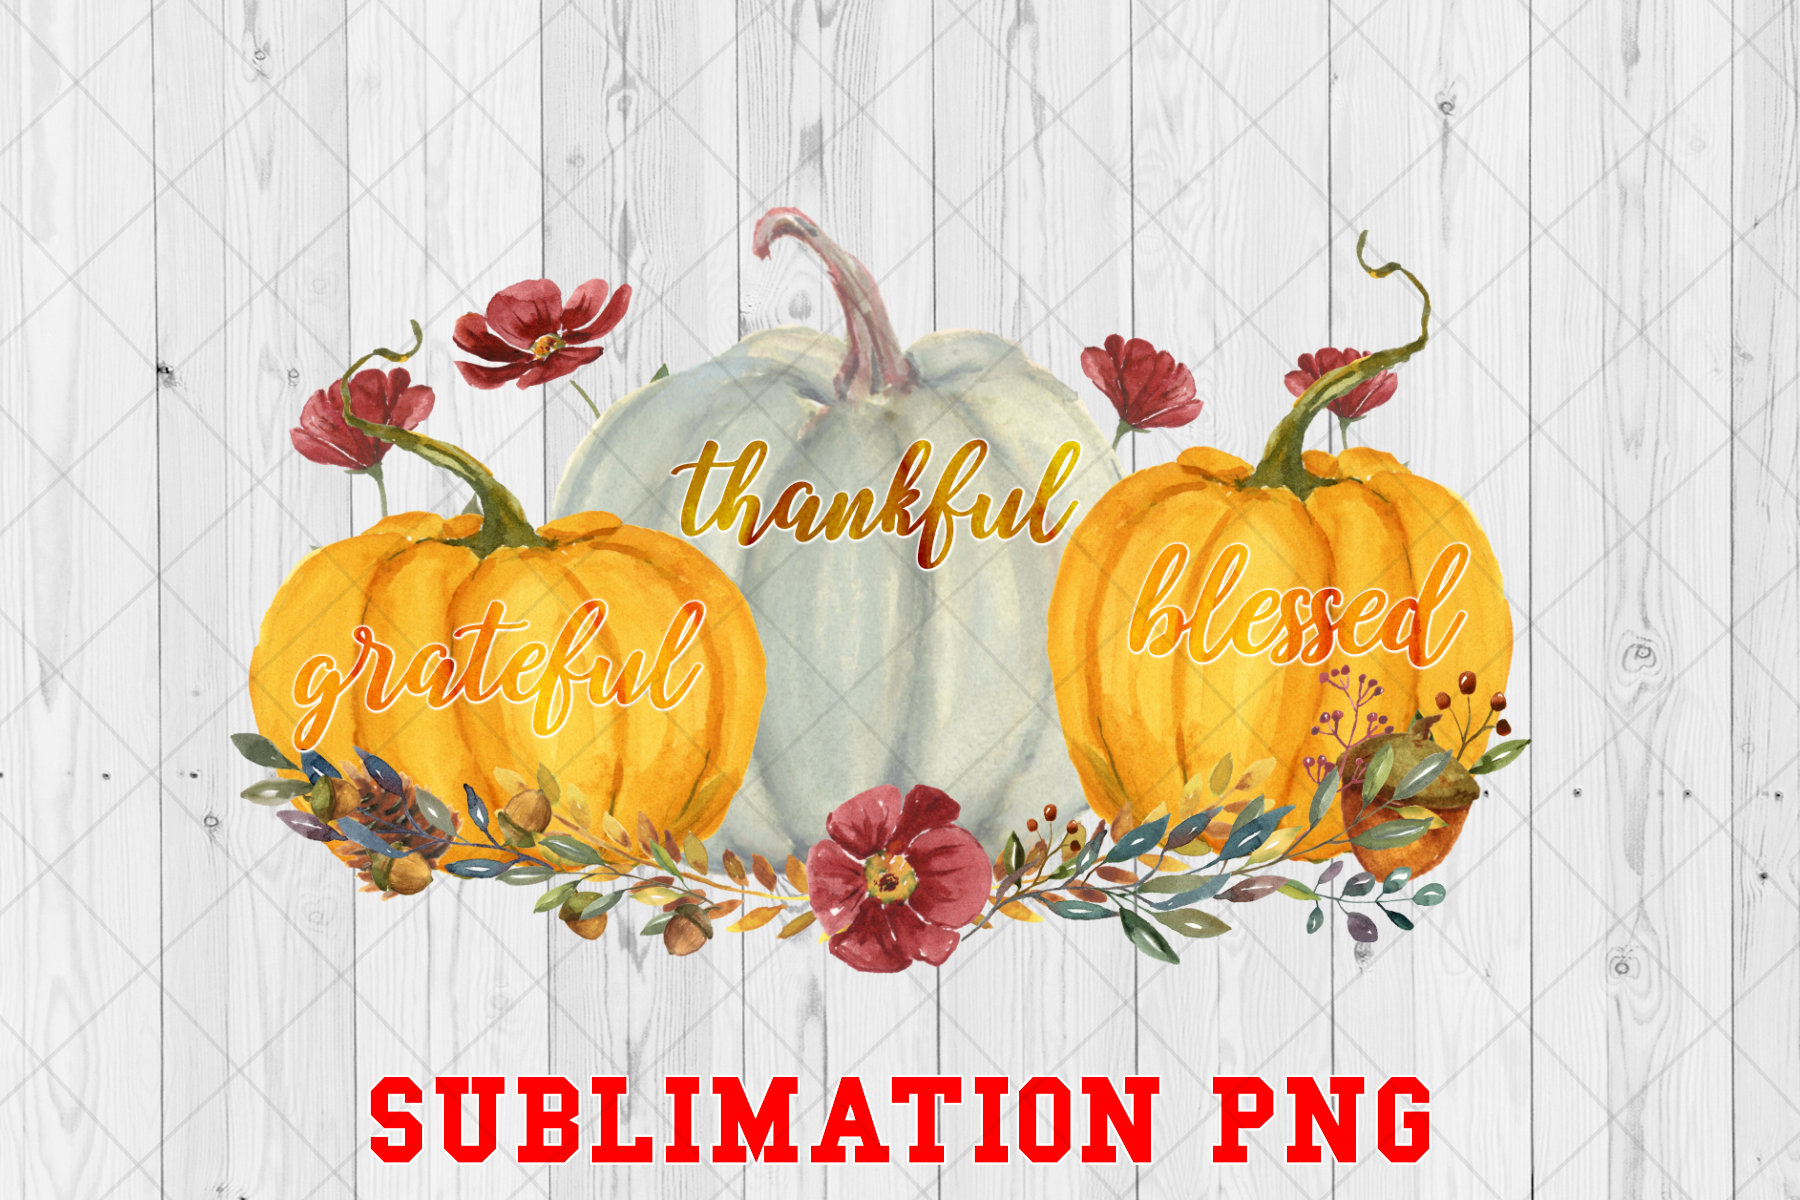 Grateful Thankful Blessed Pumpkin Png Graphic By Ten Times Studio Creative Fabrica Pumpkin png cliparts, all these png images has no background, free & unlimited downloads. grateful thankful blessed pumpkin png